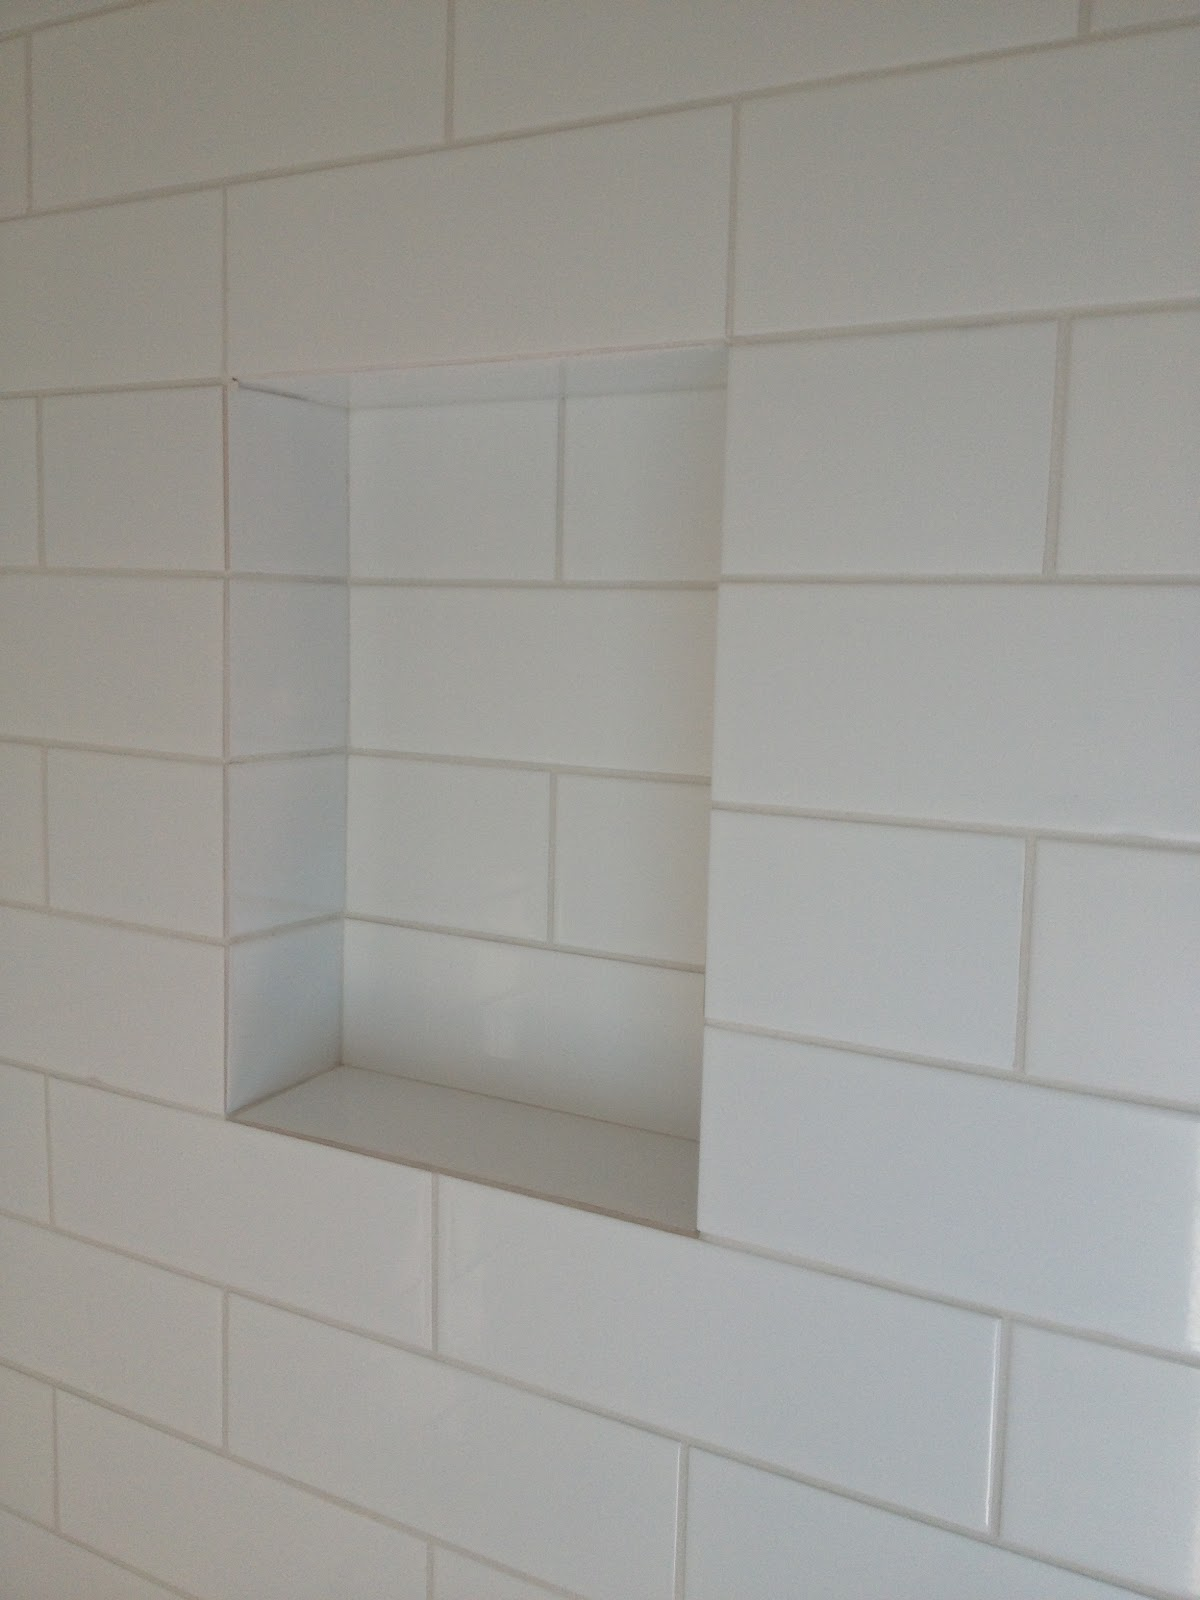 Built In Shampoo Shelf With Gently Sloped Bottom Edge To Prevent Standing  Water   This Was All Included In Our Tile Bid